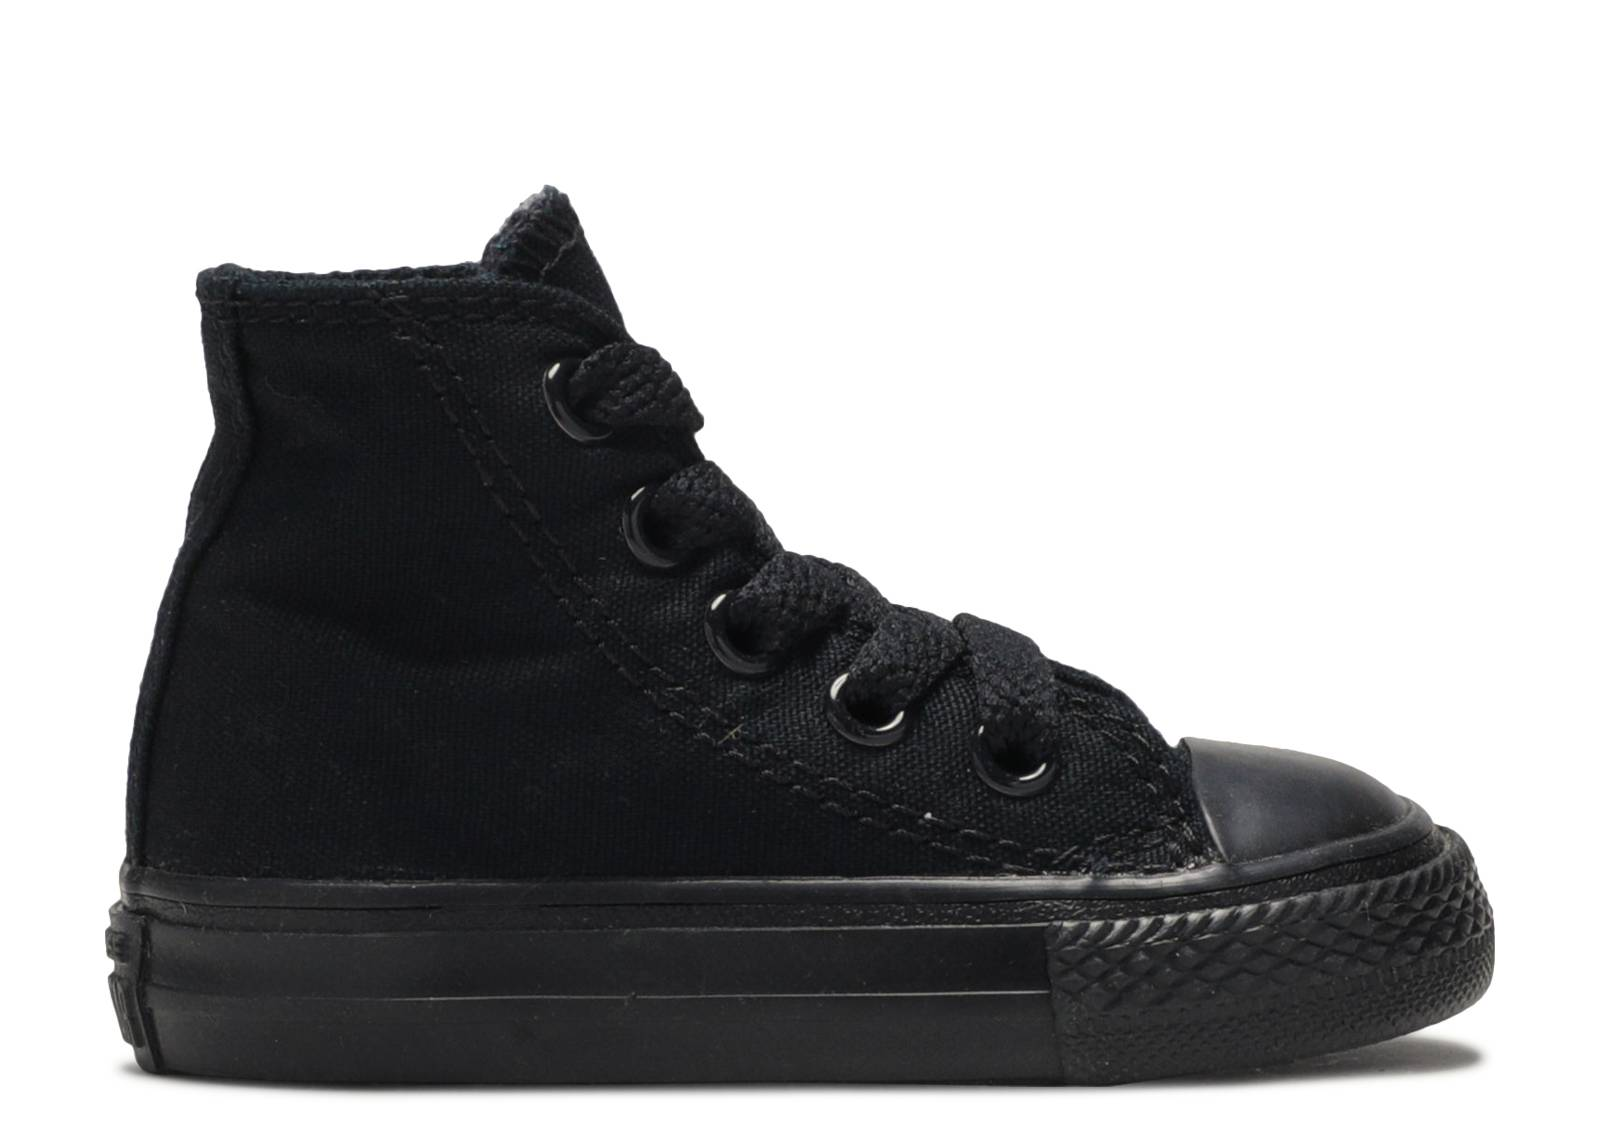 Chuck Taylor All Star SP HI